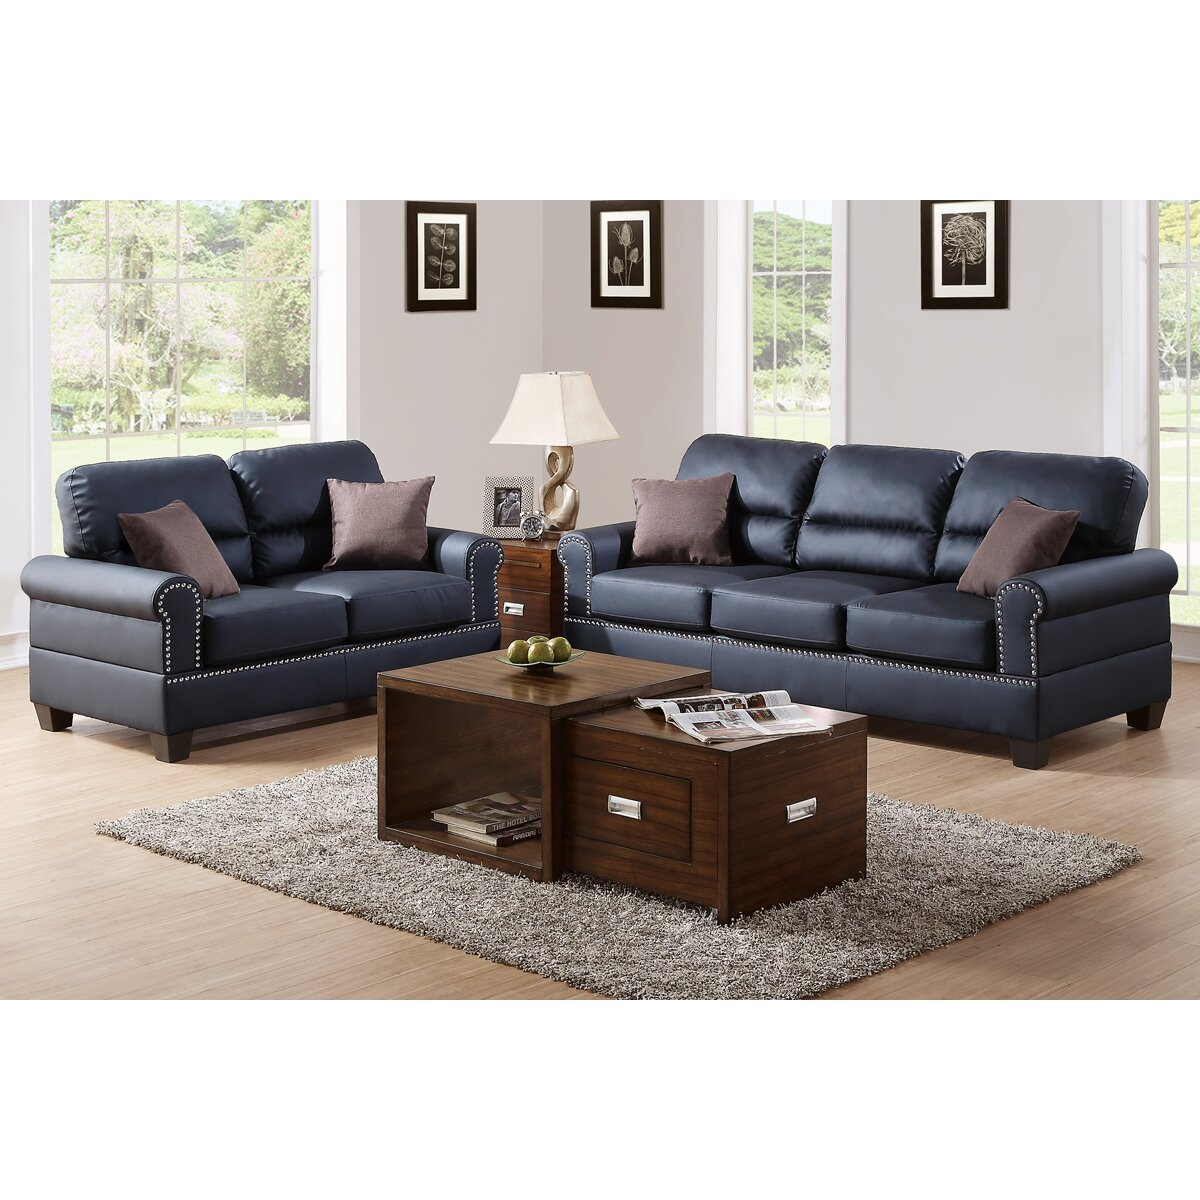 Poundex Bobkona Shelton 2 Piece Sofa And Loveseat Set Reviews Wayfair